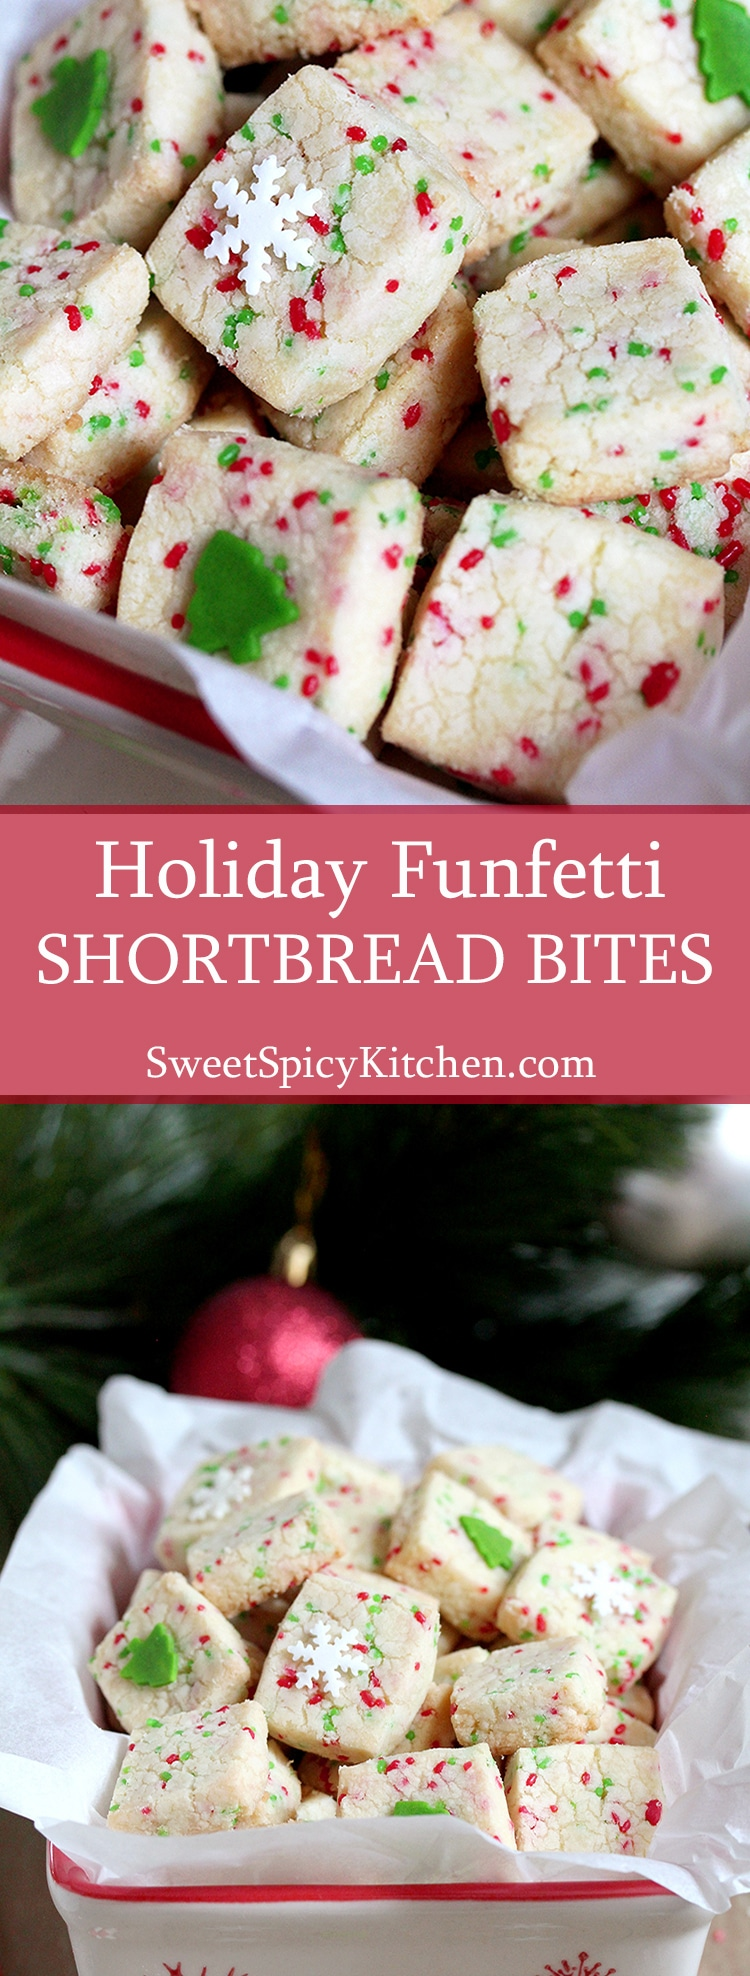 Holiday Funfetti Shortbread Bites – quick & easy, sweet, crunchy bites are perfect for holidays.